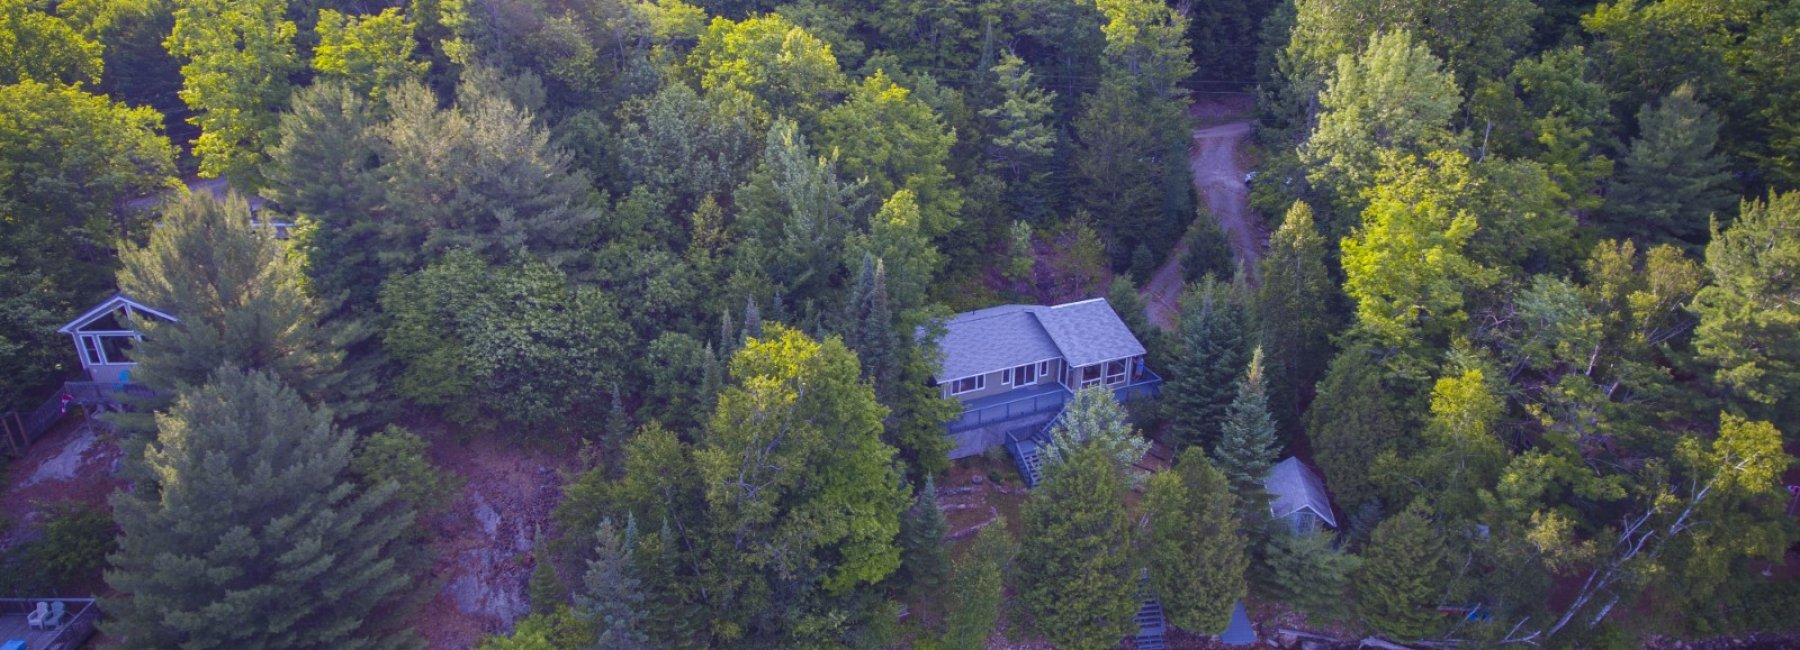 1325 Dardanelles Road, Drag Lake, Haliburton